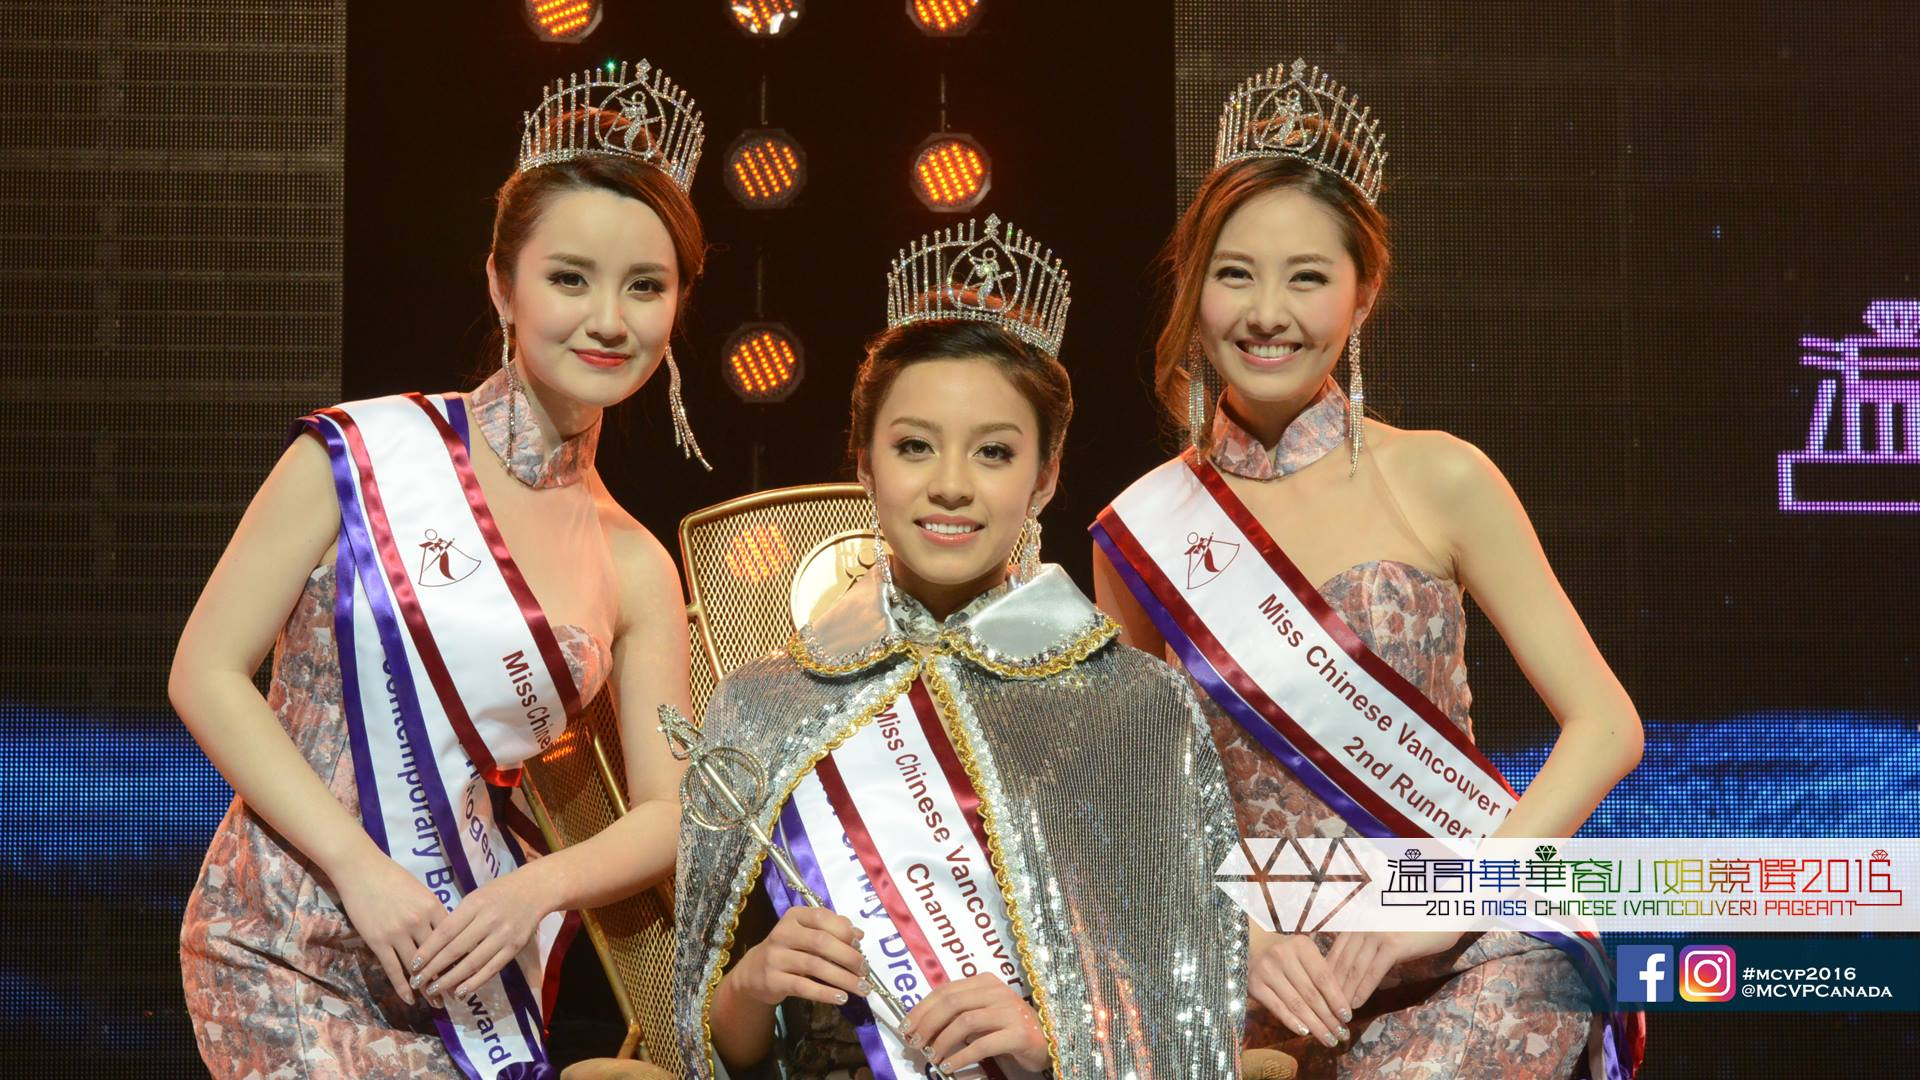 Winners of Miss Chinese Vancouver 2016  Winner Maria Rincon (C), first runner-up Prenda Wang (L) and second runner-up Sherry Xue pose for photos after the crowning cermony at the Miss Chinese Vancouver Pageant in Vancouver, BC, Canada